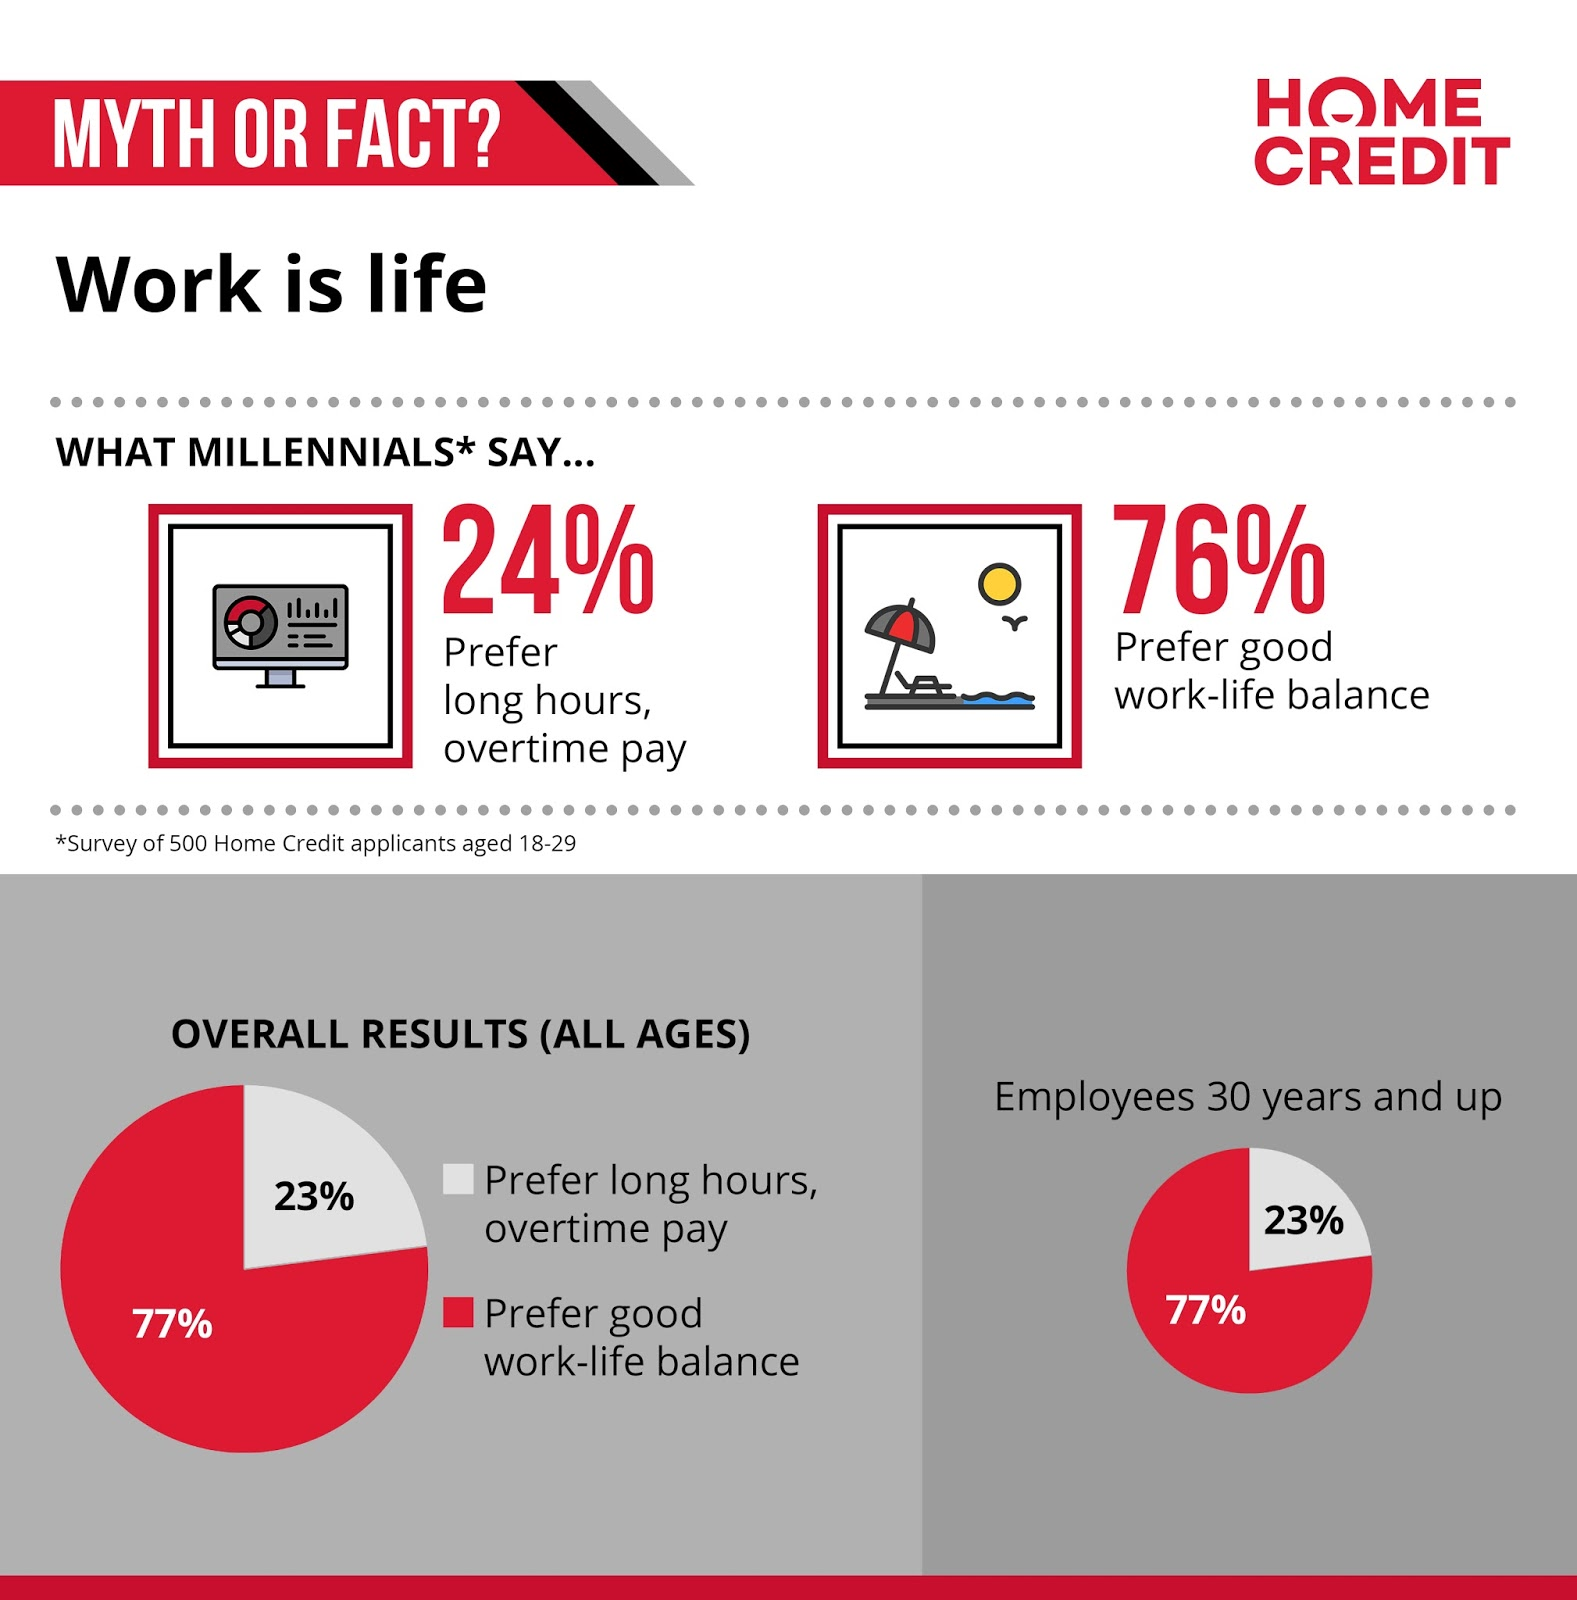 Myth or fact: work is life